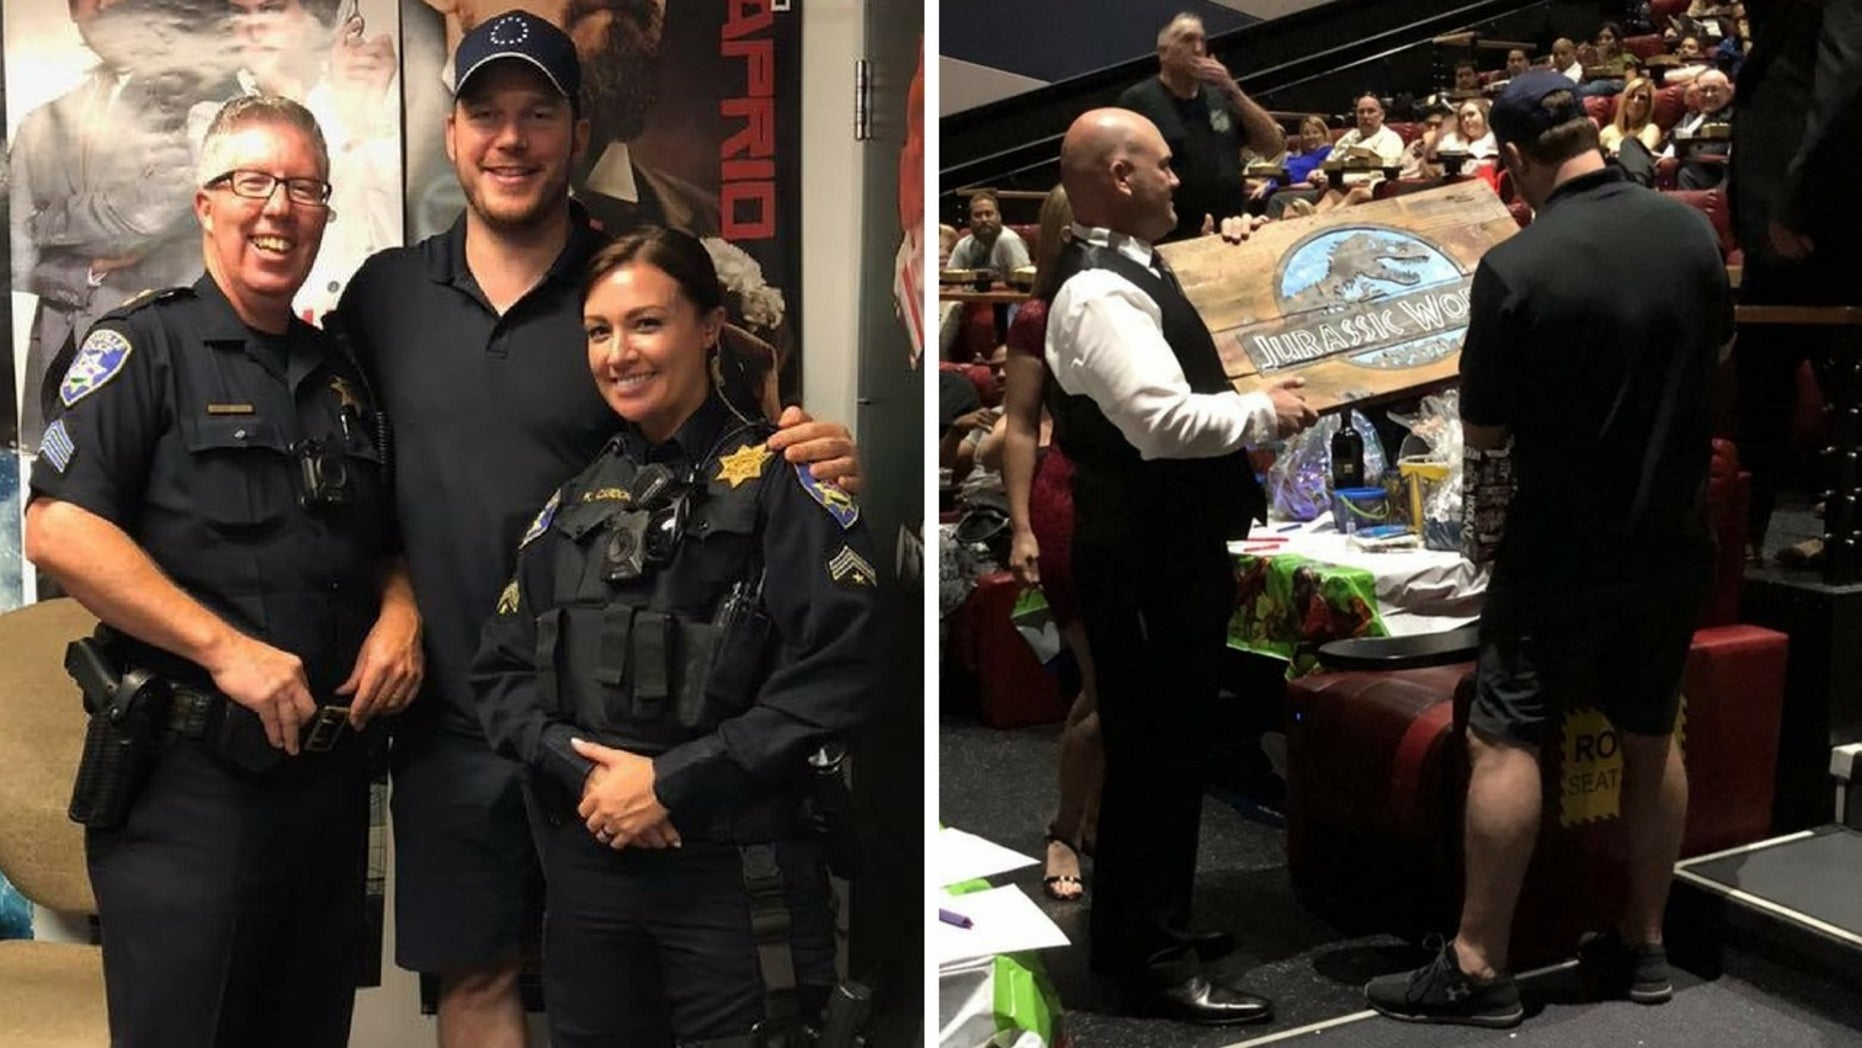 Chris Pratt surprises moviegoers on Thursday by attending a fundraiser at a California movie theater helping raise money for law enforcement member's children with cancer.